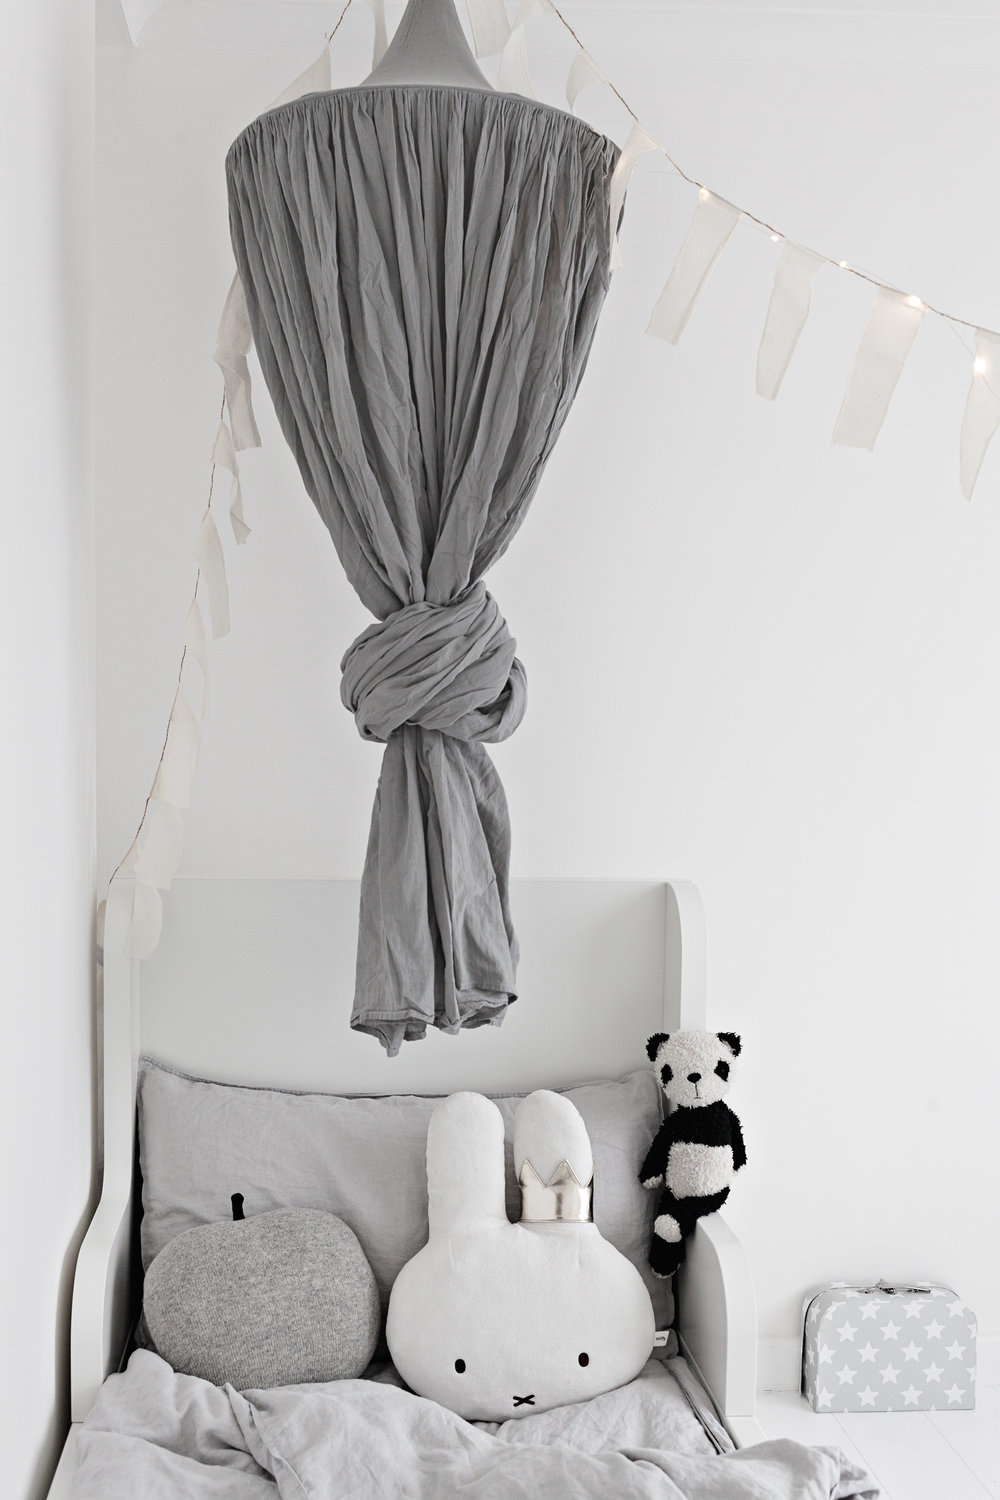 Grey Linen Canopy from Numero 74 | Grey Bed Linens from H&M | Vintage Panda from The White Company | White Bed from Ikea | Bunting from Sukha Amsterdam